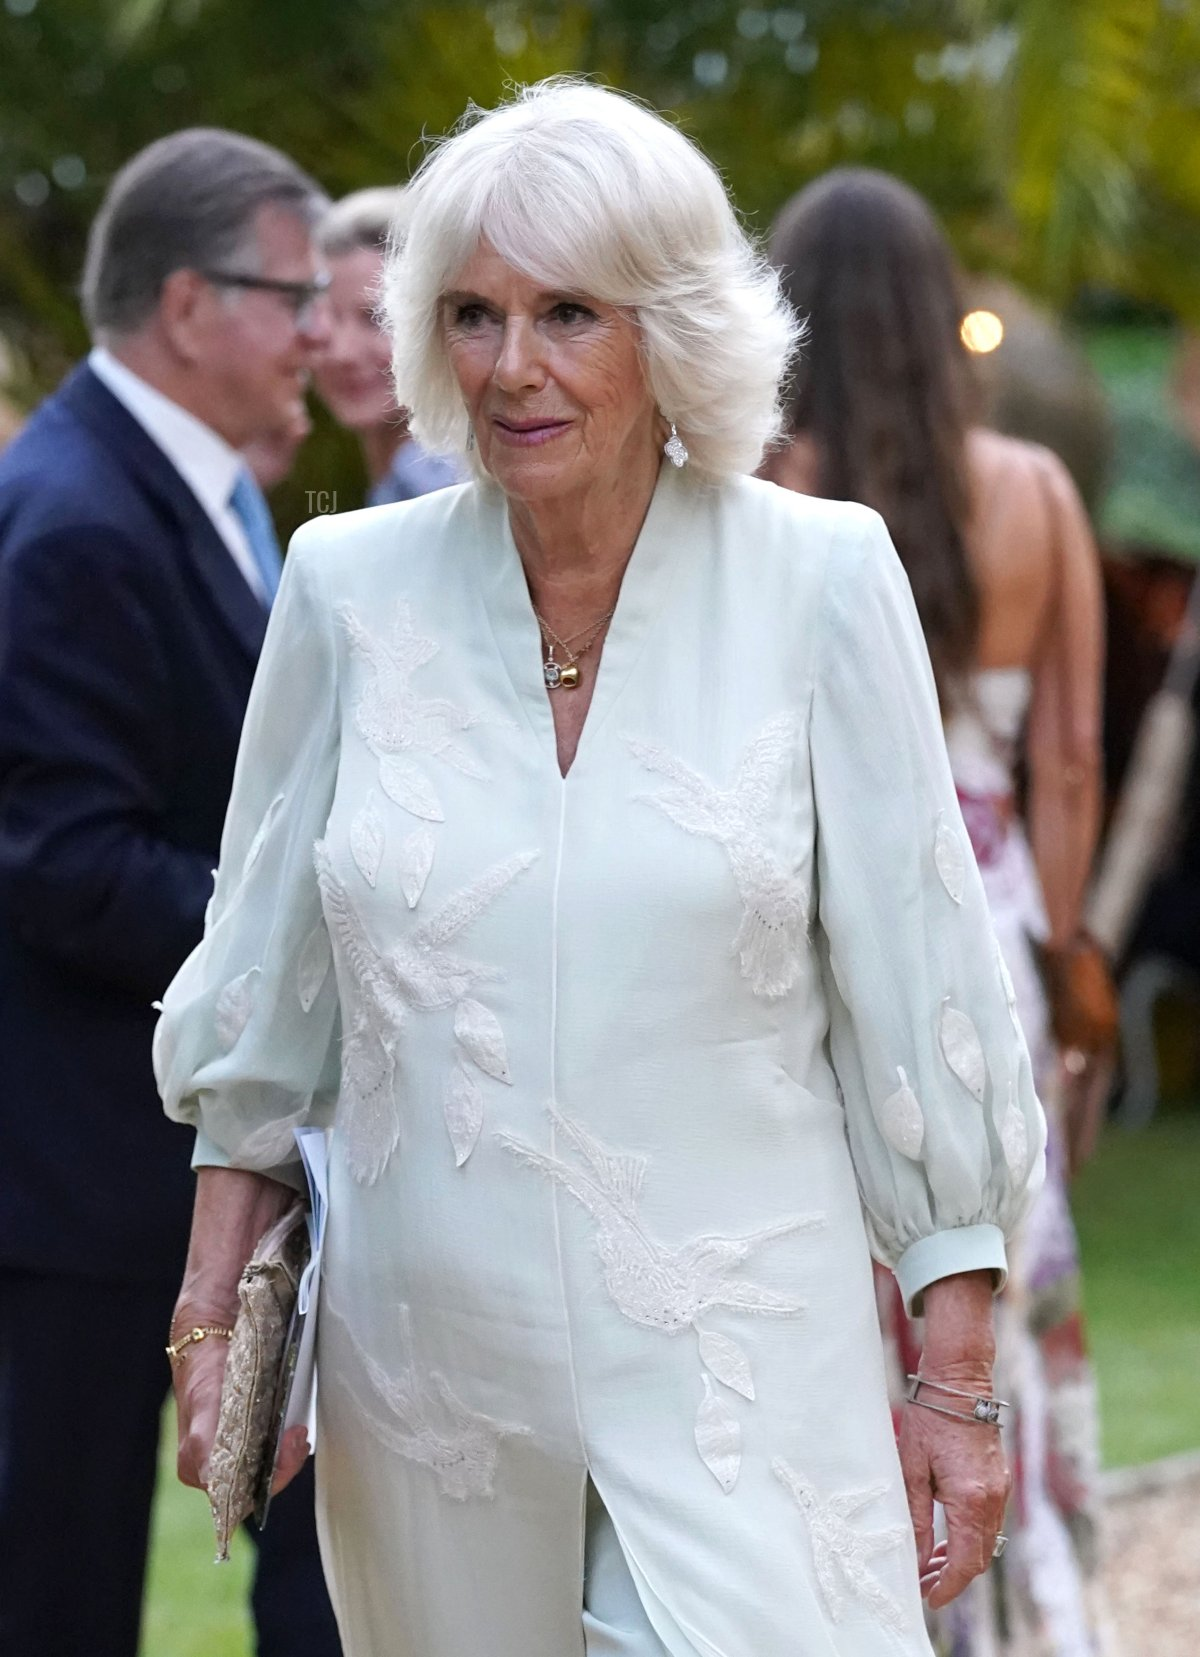 """Camilla, Duchess of Cornwall attends the """"A Starry Night In The Nilgiri Hills"""" event hosted by the Elephant Family in partnership with the British Asian Trust at Lancaster House on July 14, 2021 in London, England"""